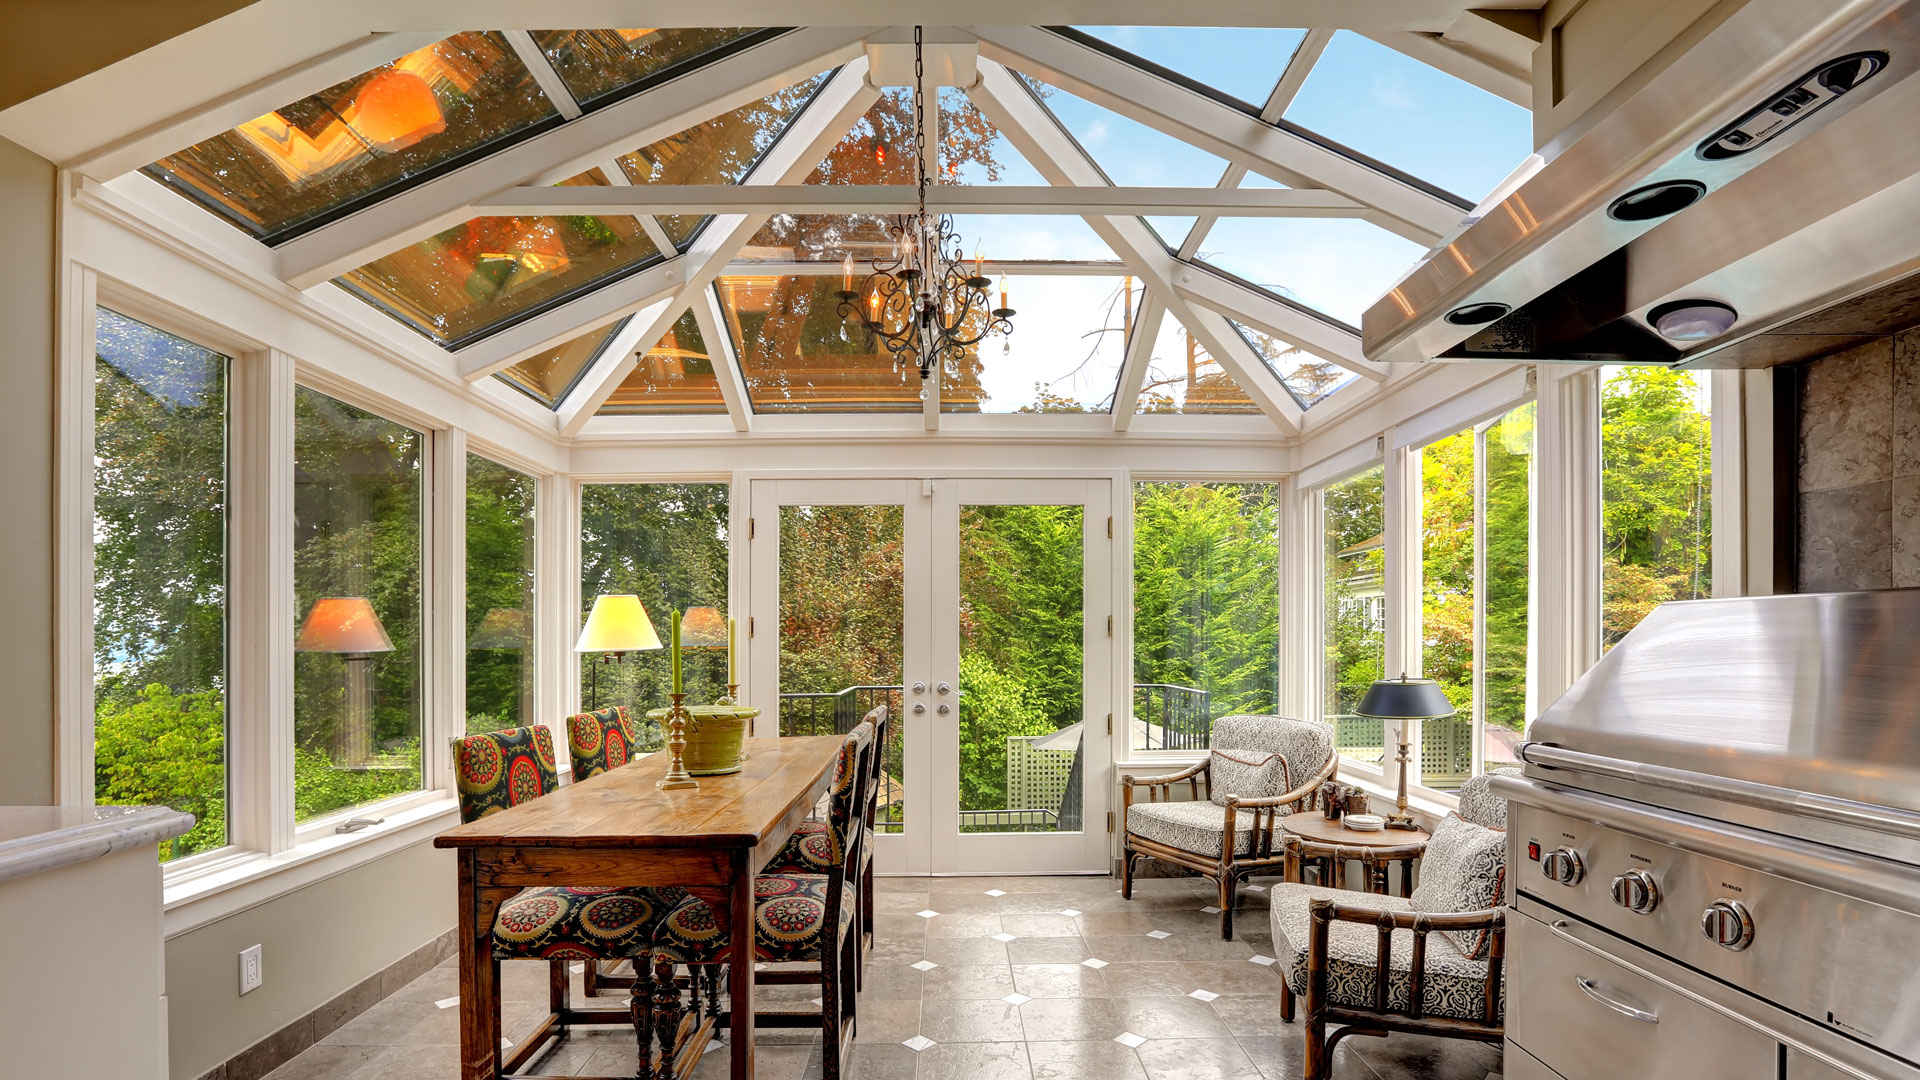 Sunrooms Archives - Crystal Clear Windows and Doors